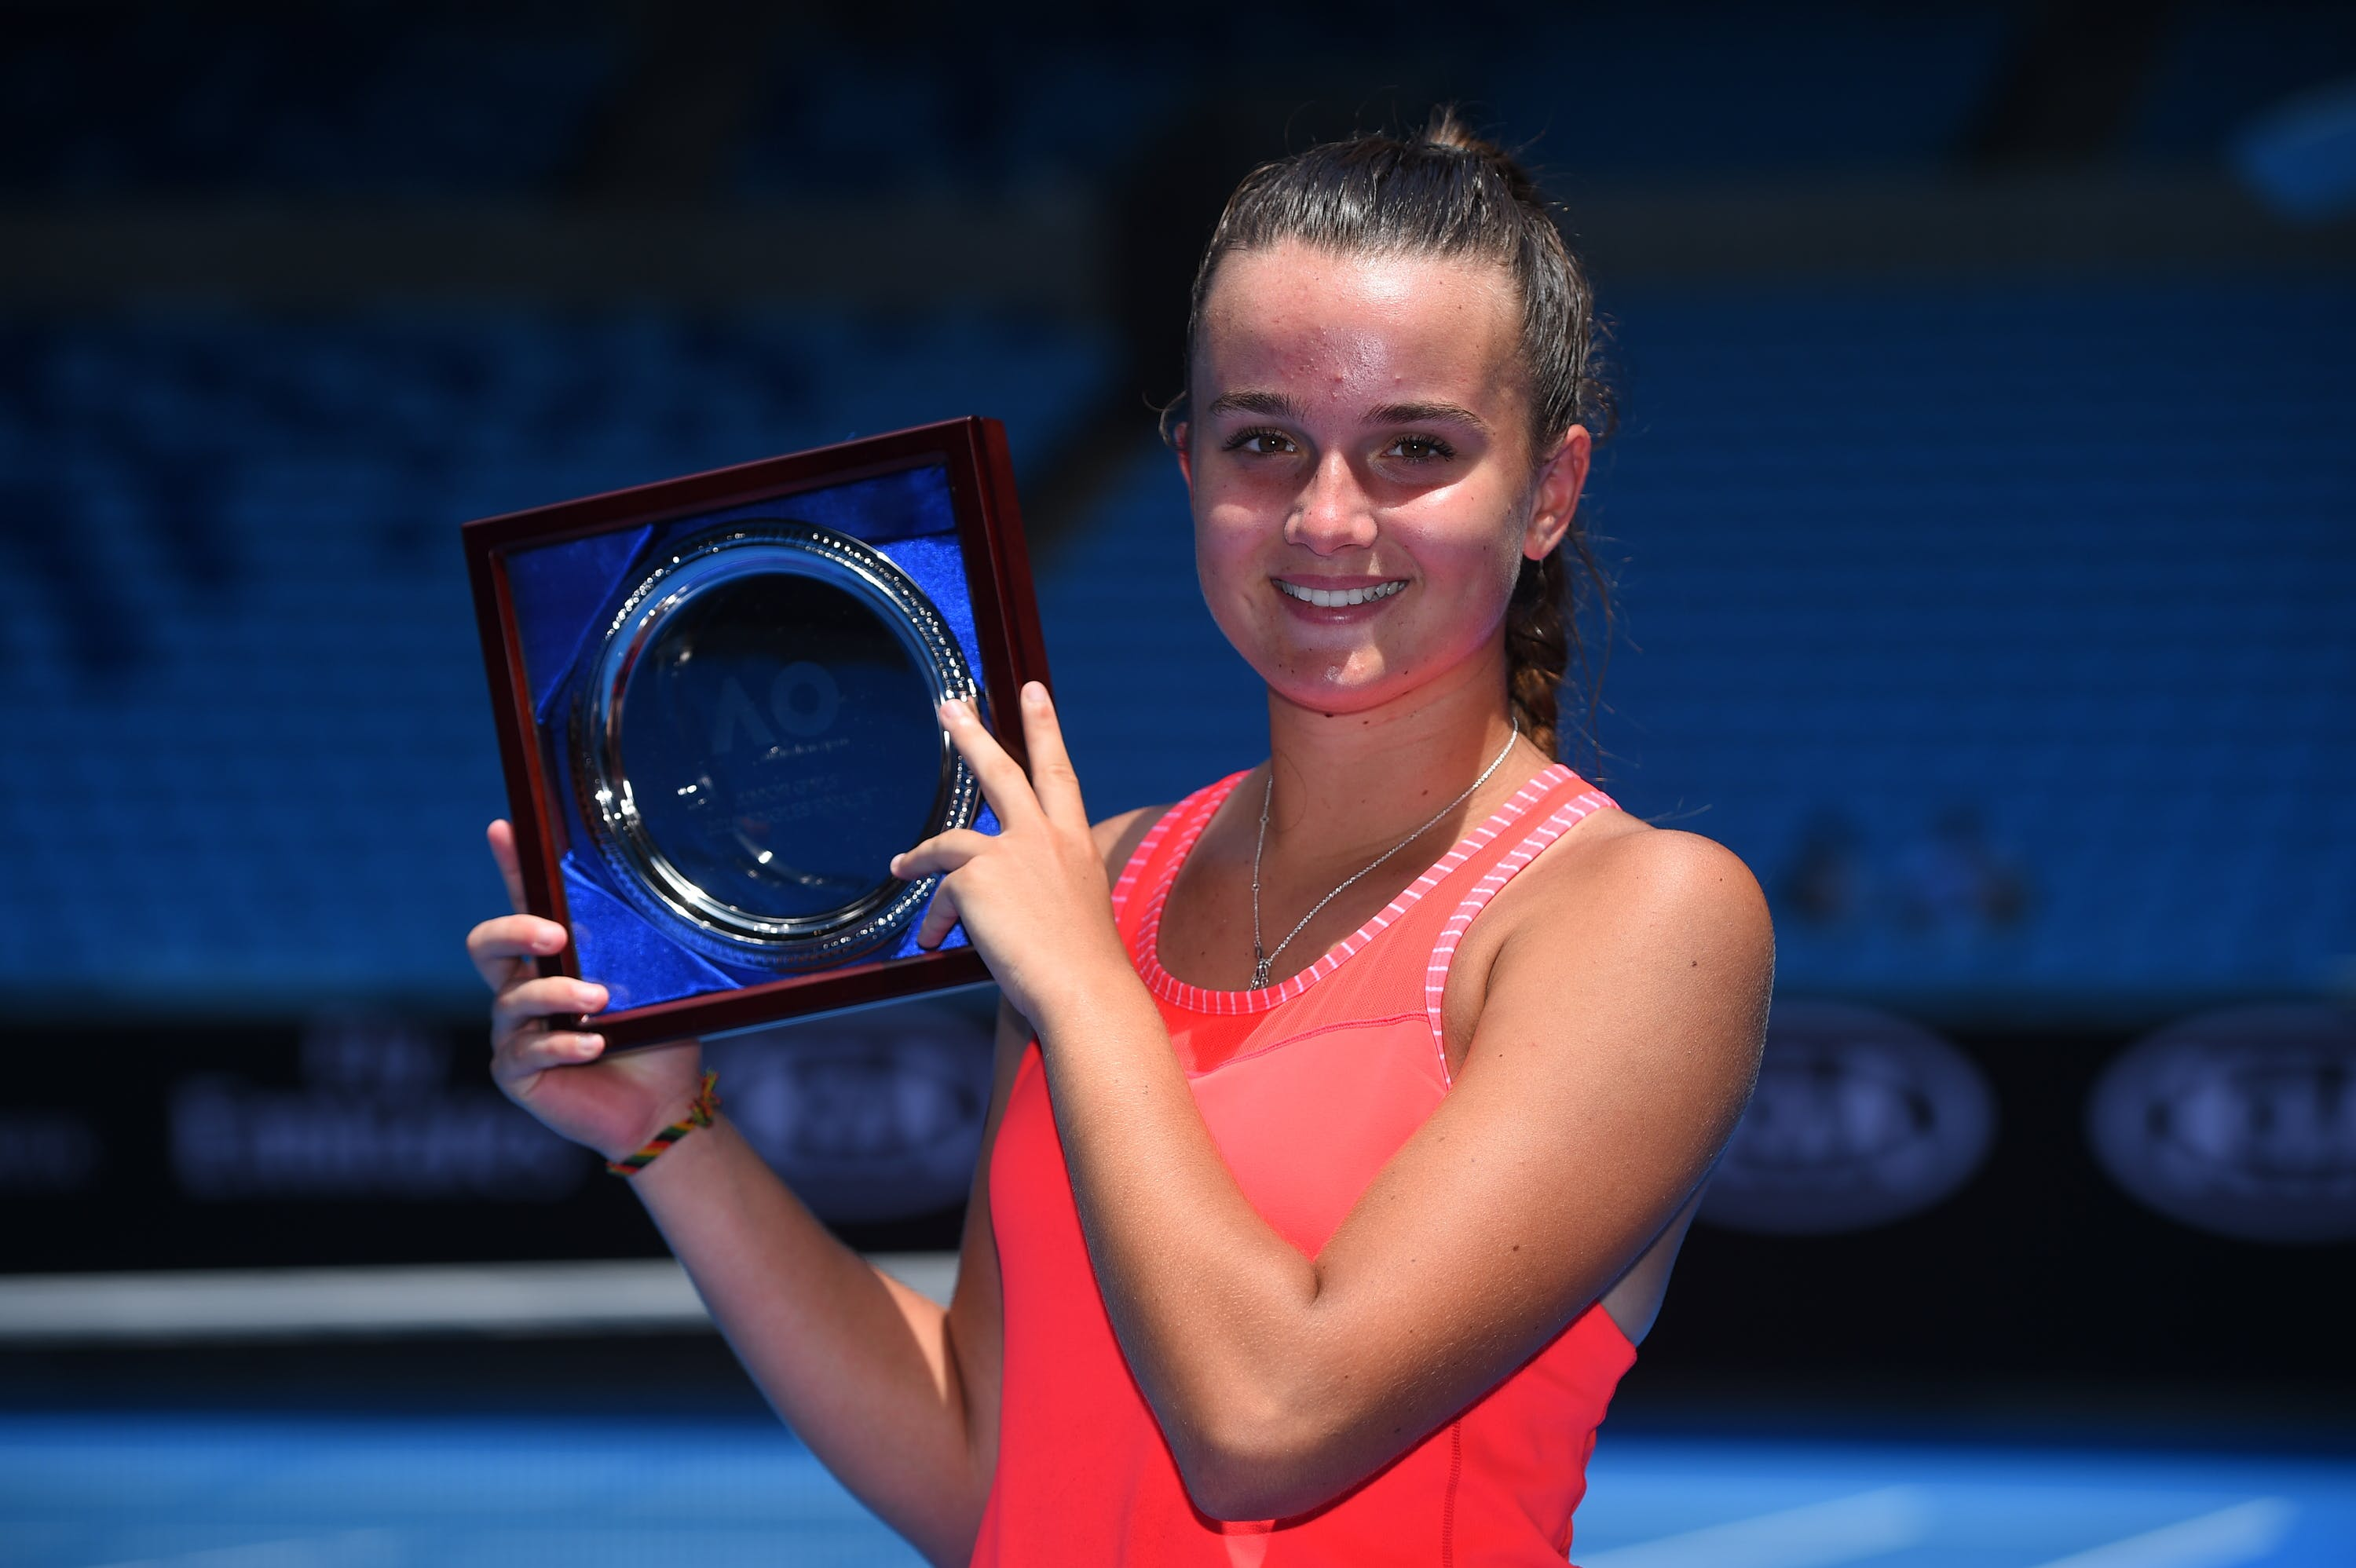 Clara Burel presenting her finalist plate at the 2018 Australian Open